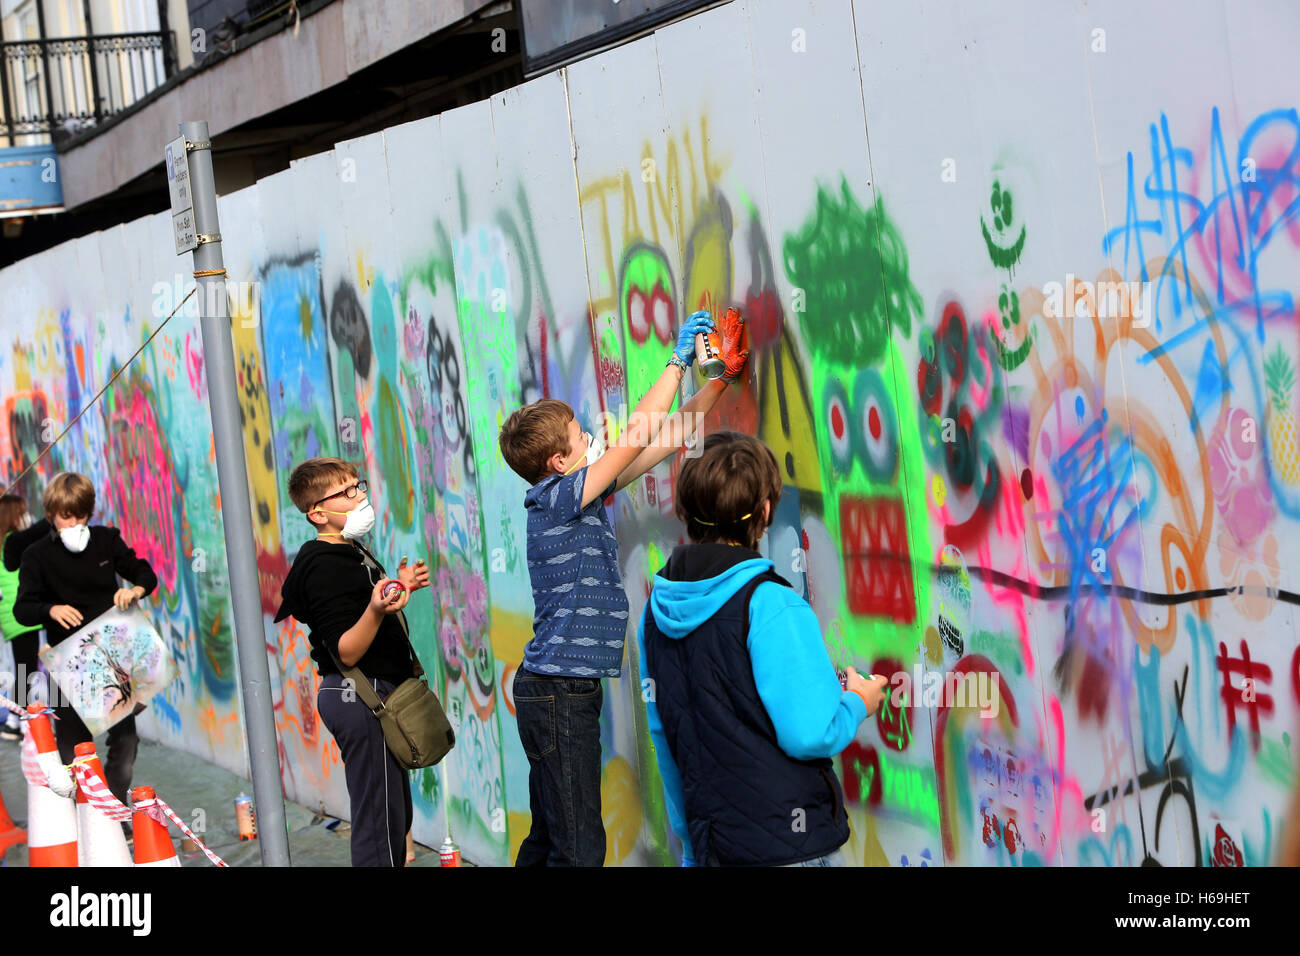 small creative project where young people can graffiti on a boarded